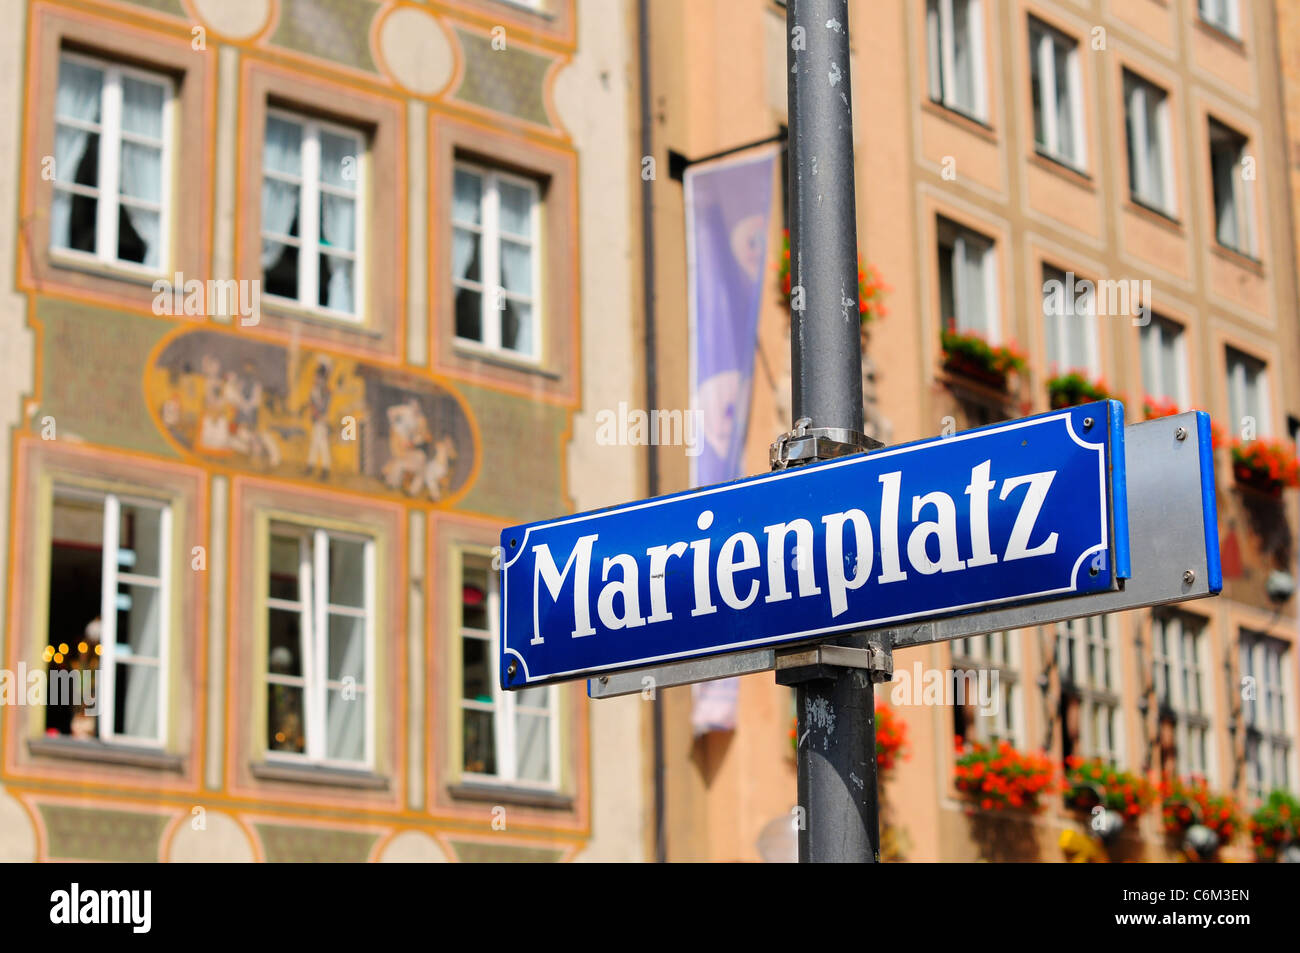 La Place Marienplatz, Munich, Allemagne Photo Stock